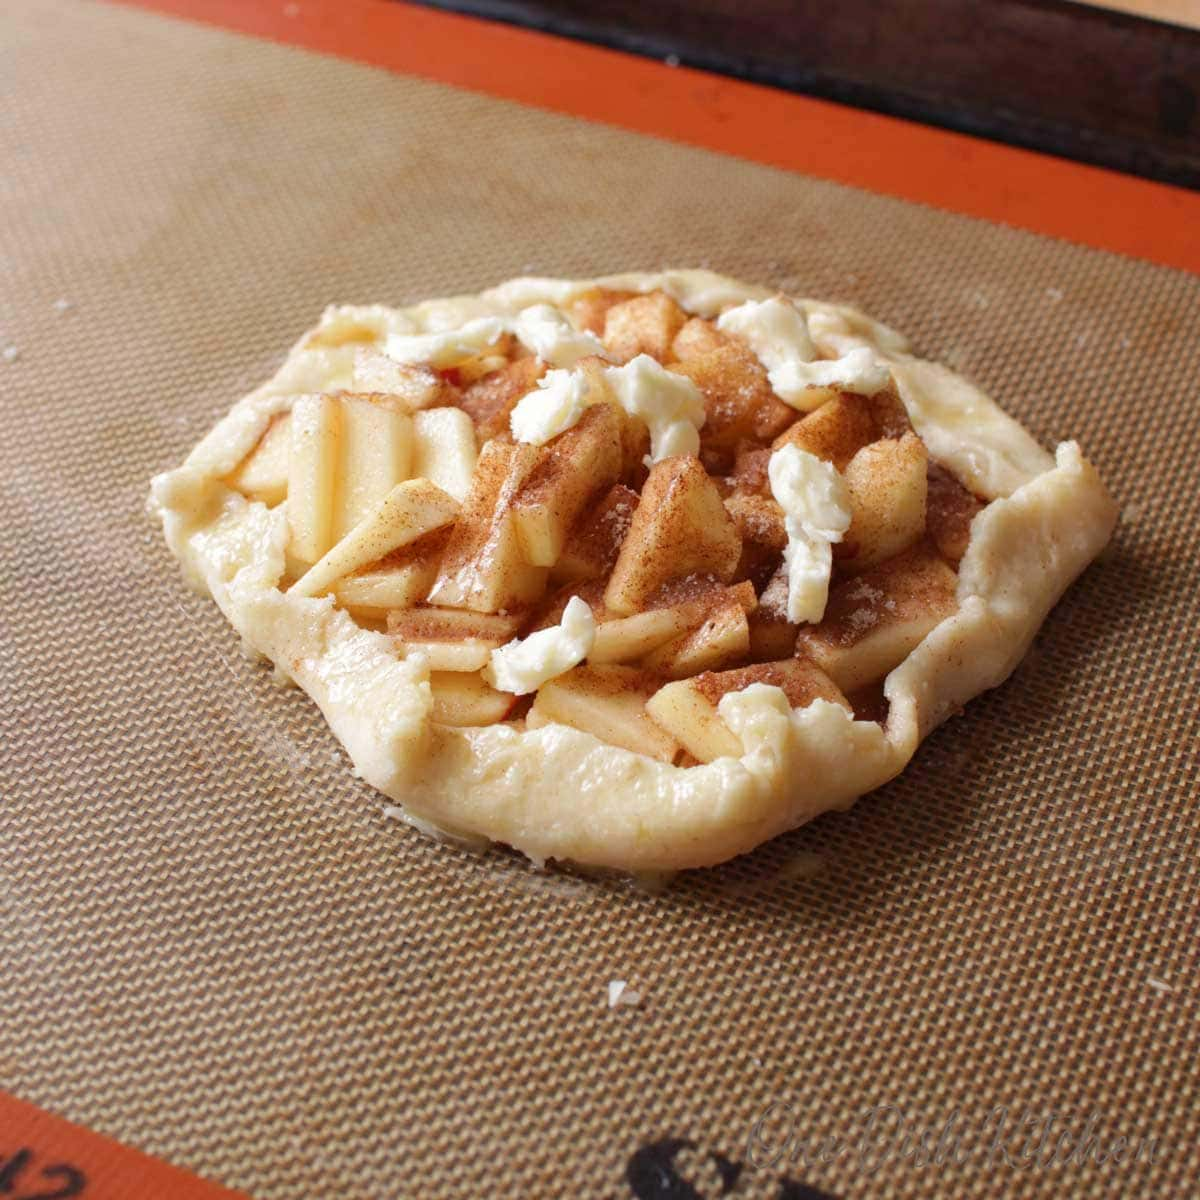 An uncooked mini apple galette on a baking sheet